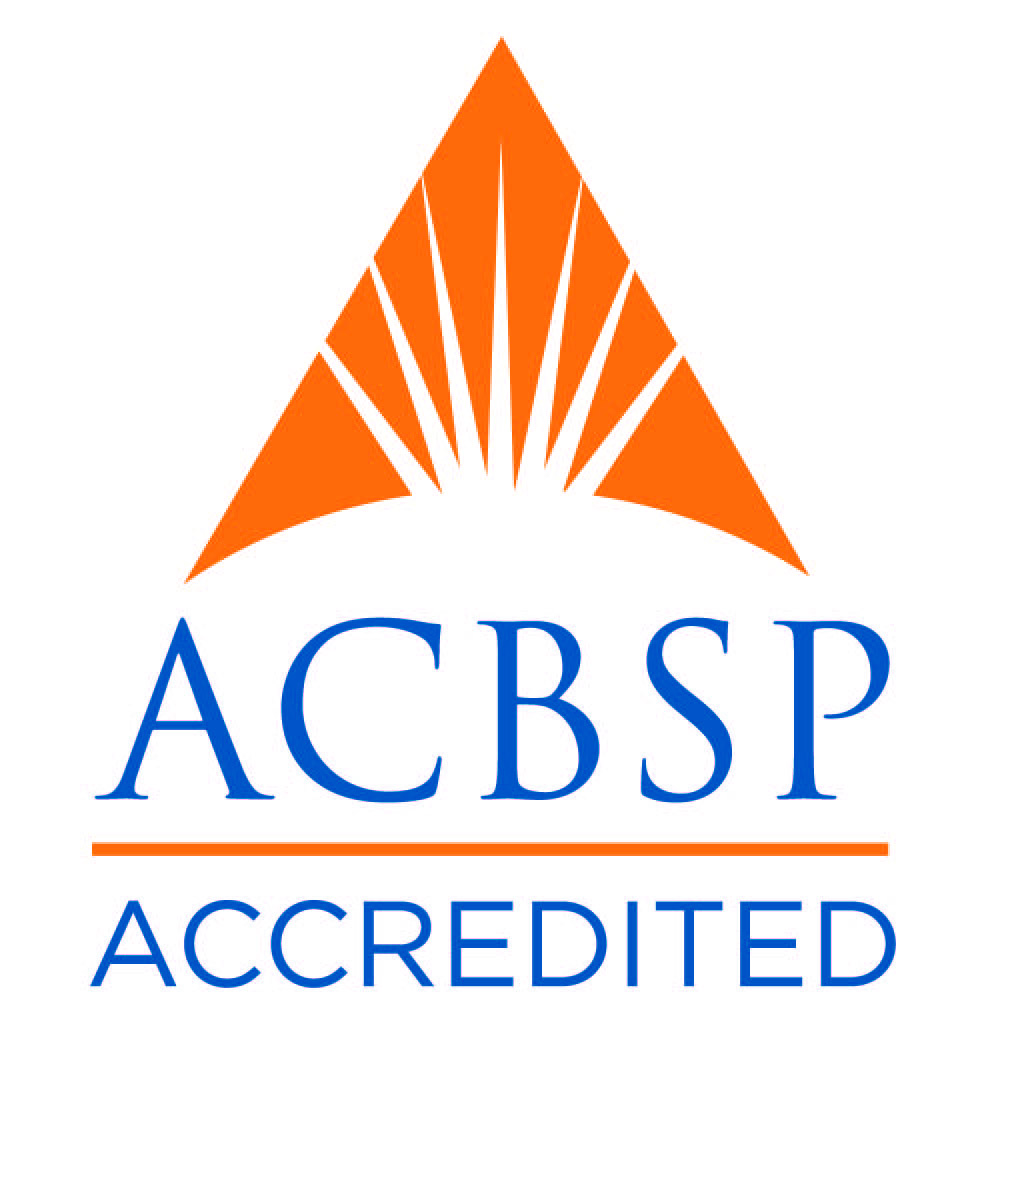 ACBSP_Accredited_0.jpg